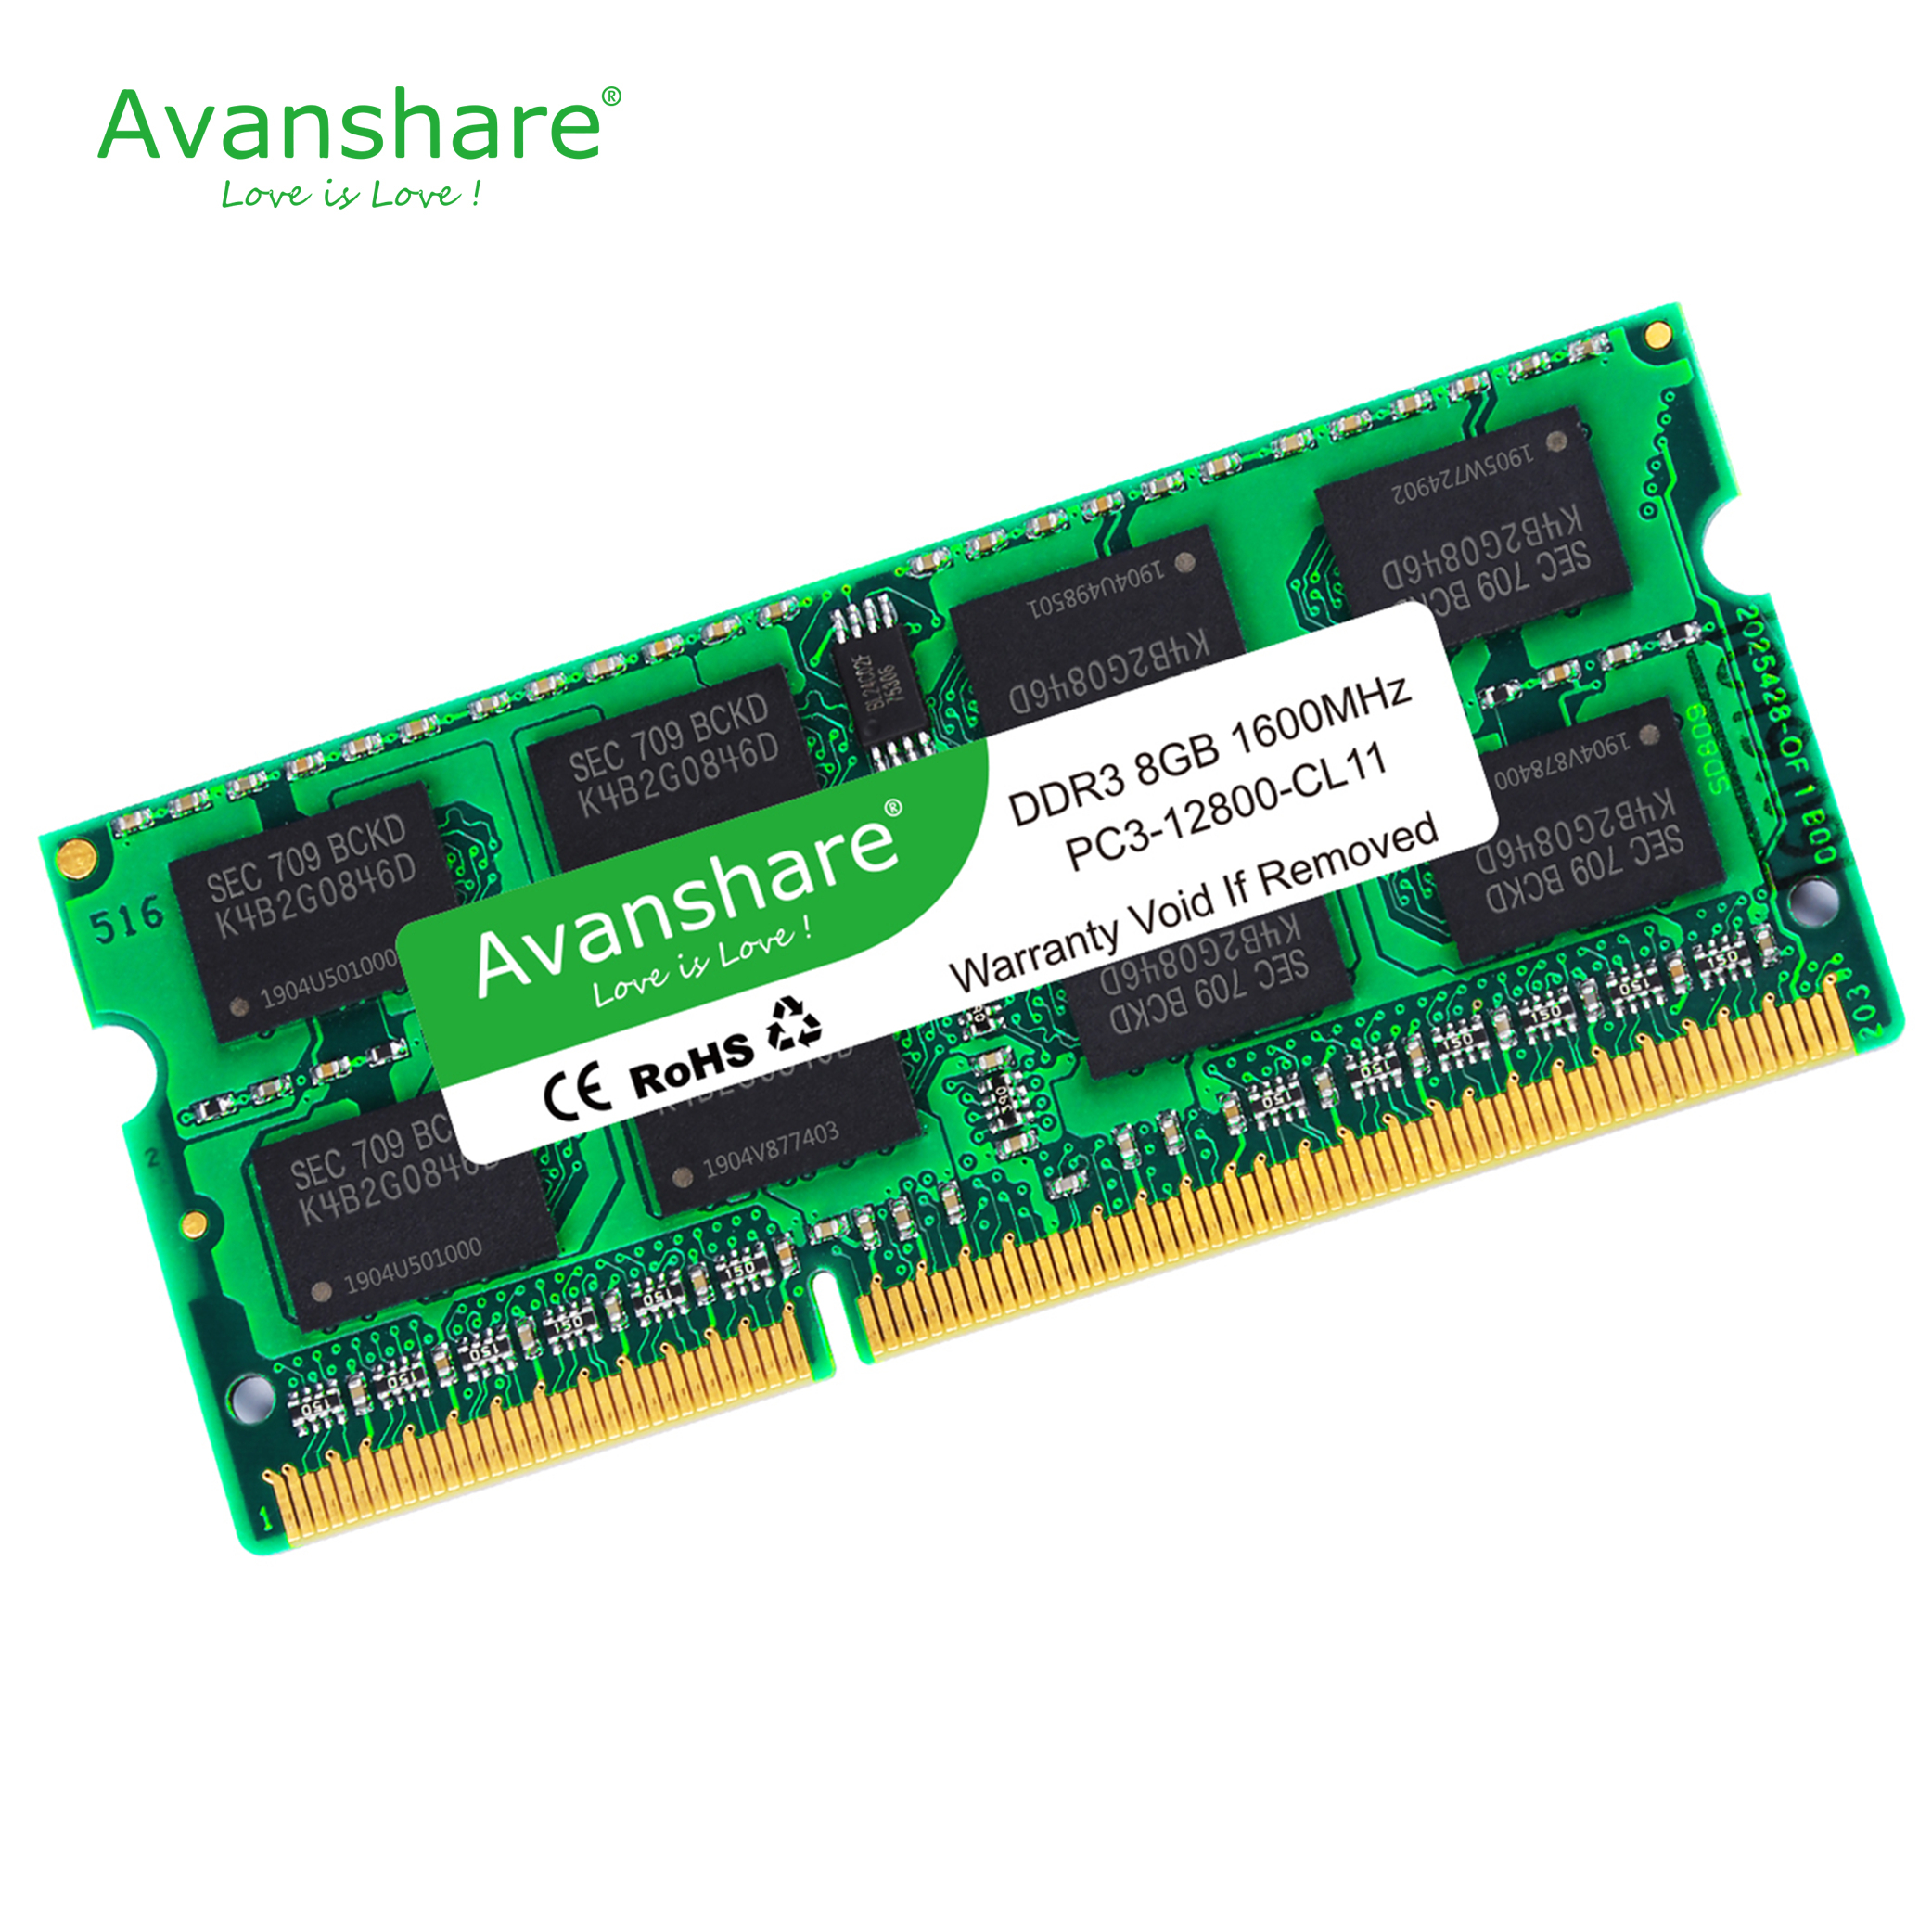 memory ddr3 8gb for laptop 1600MHz sodimm macbook ram <font><b>ddr3l</b></font> <font><b>1600</b></font> compatible ddr3 laptop <font><b>4gb</b></font> 1333MHz sdram 1066mhz by Avanshare image